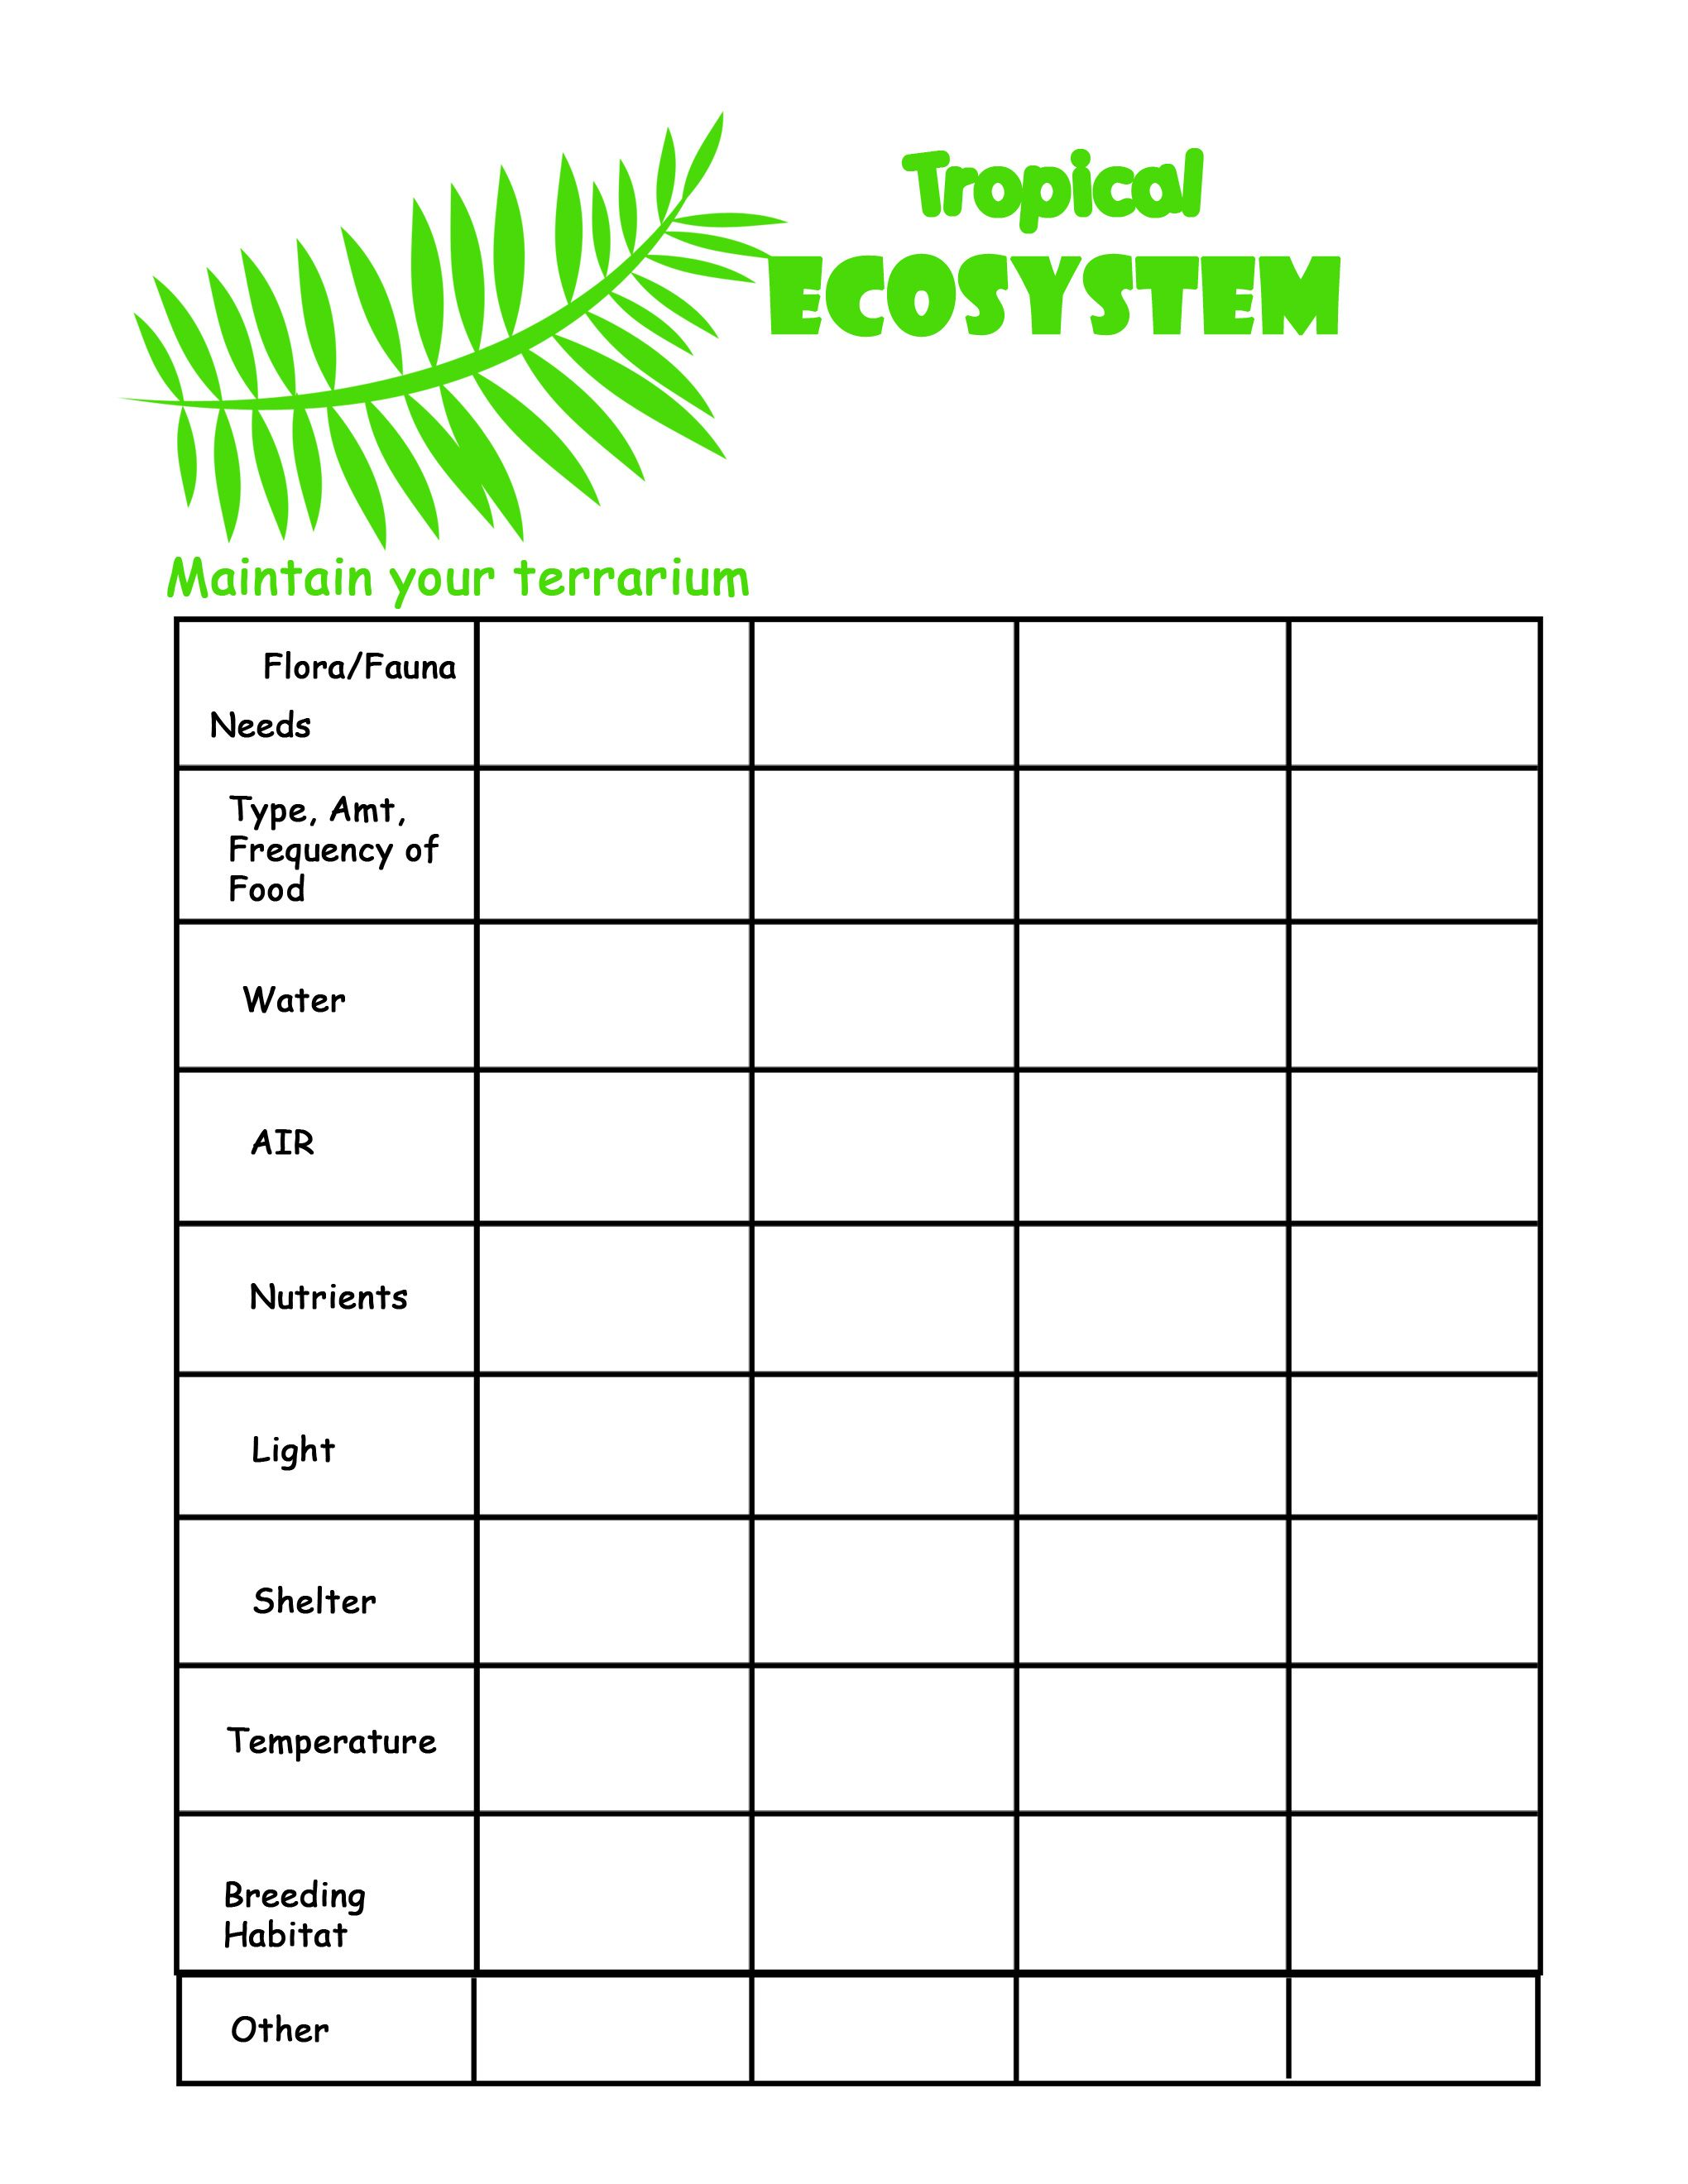 worksheet Ecosystems Worksheet collection of ecosystems for kids worksheets sharebrowse sharebrowse